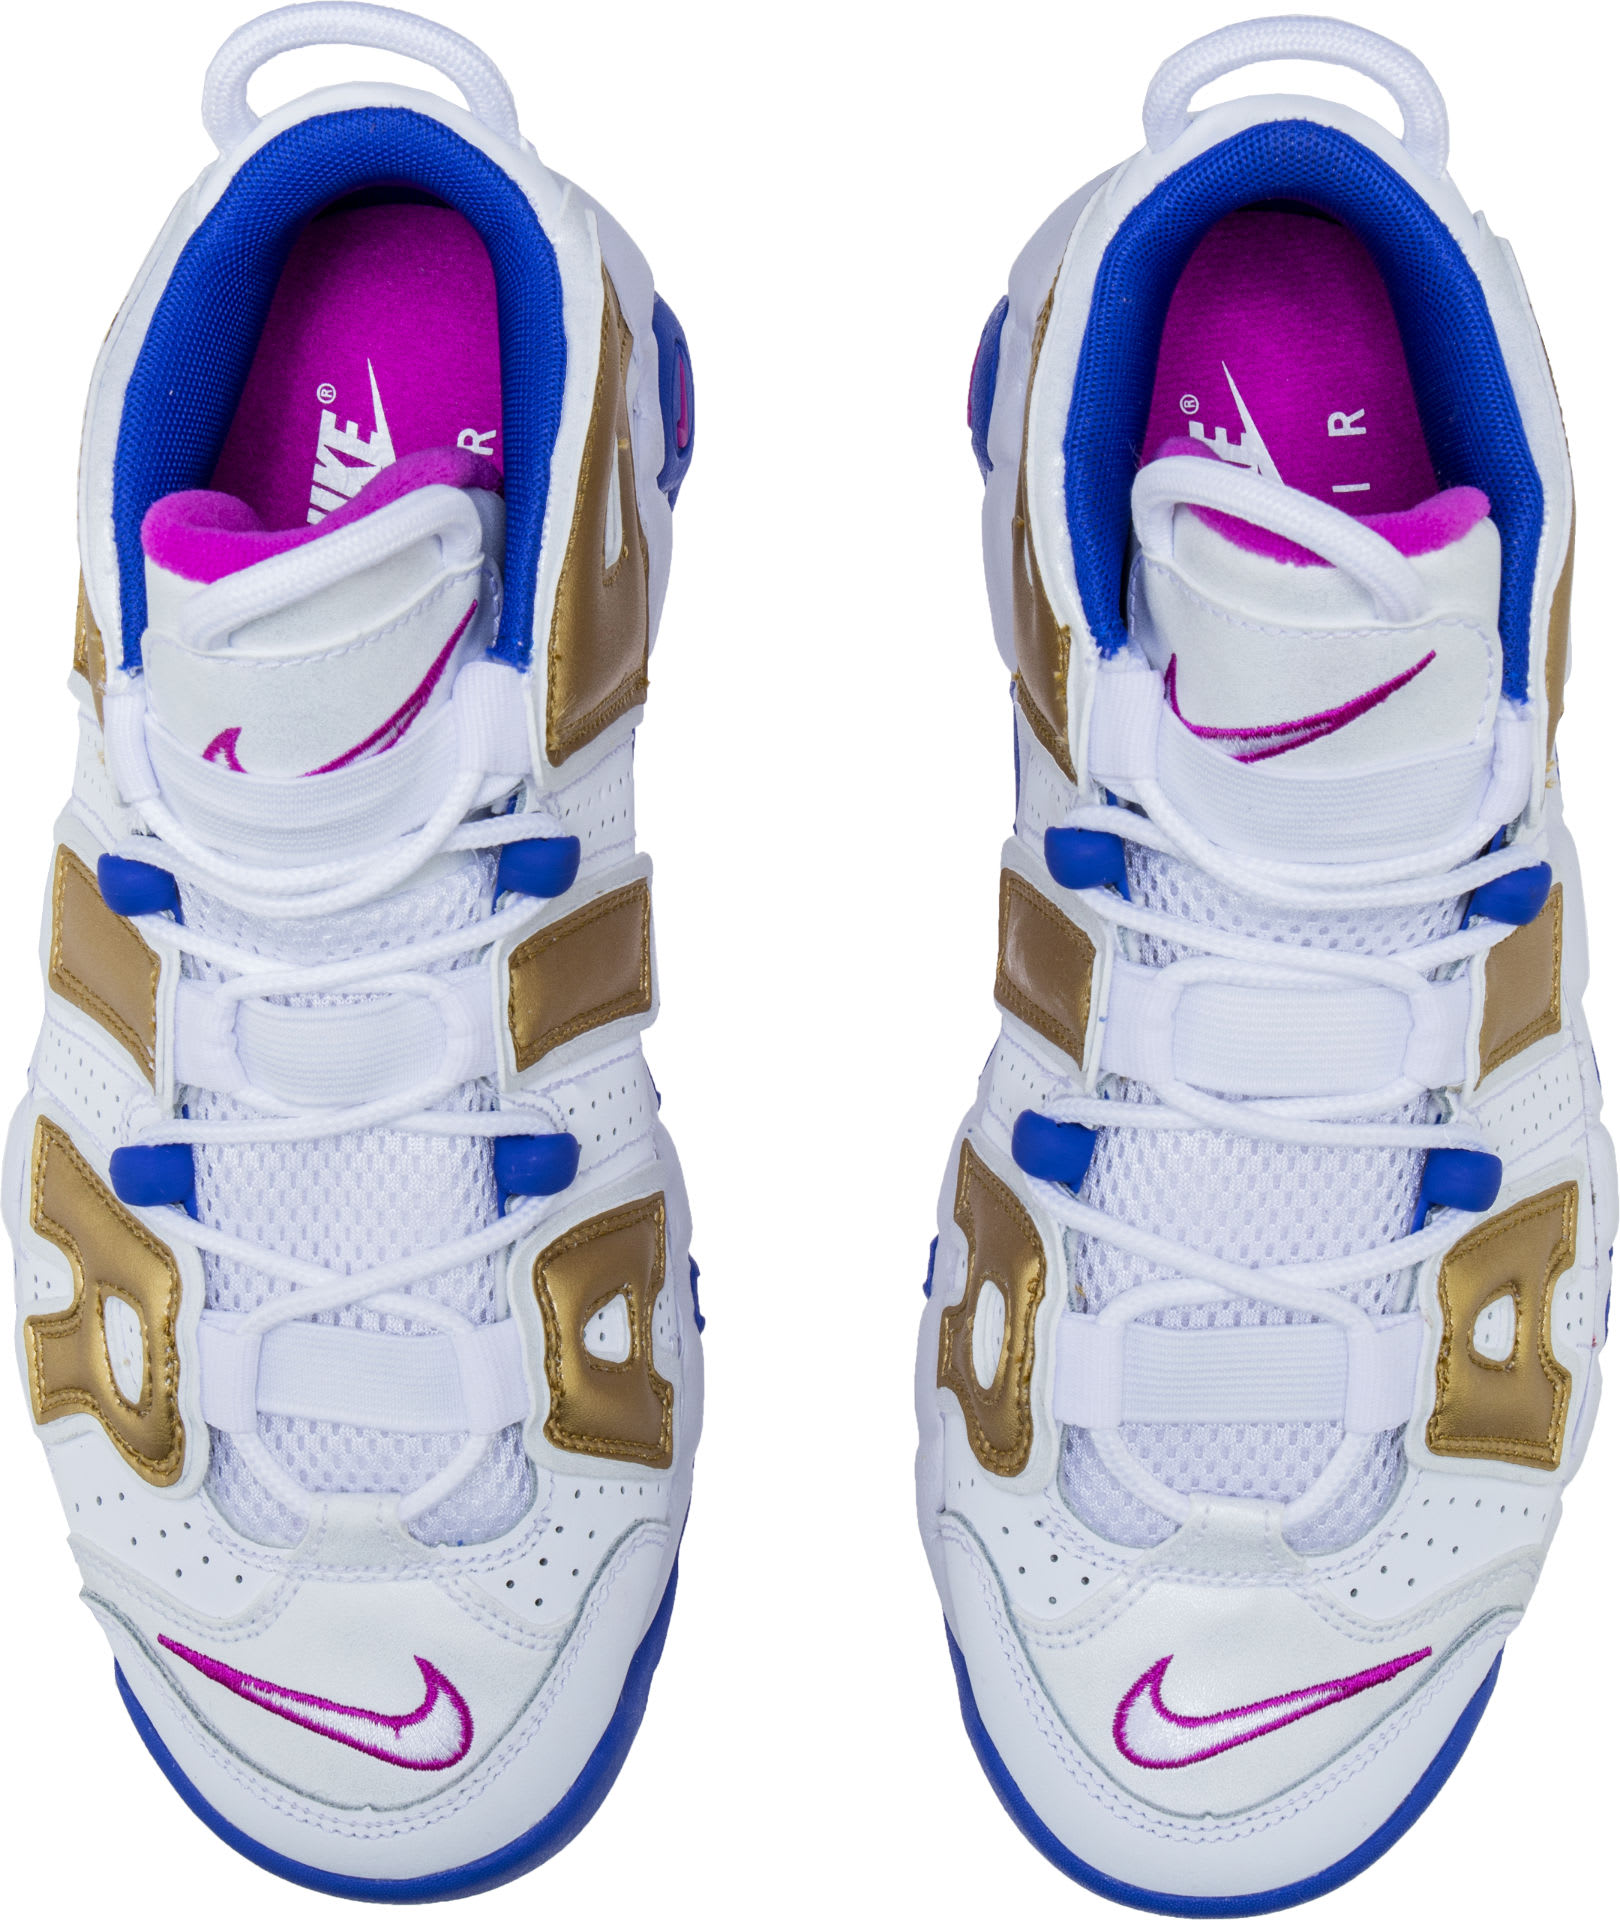 low priced 11cfb c7c34 ... spain nike air more uptempo e4412 13d44